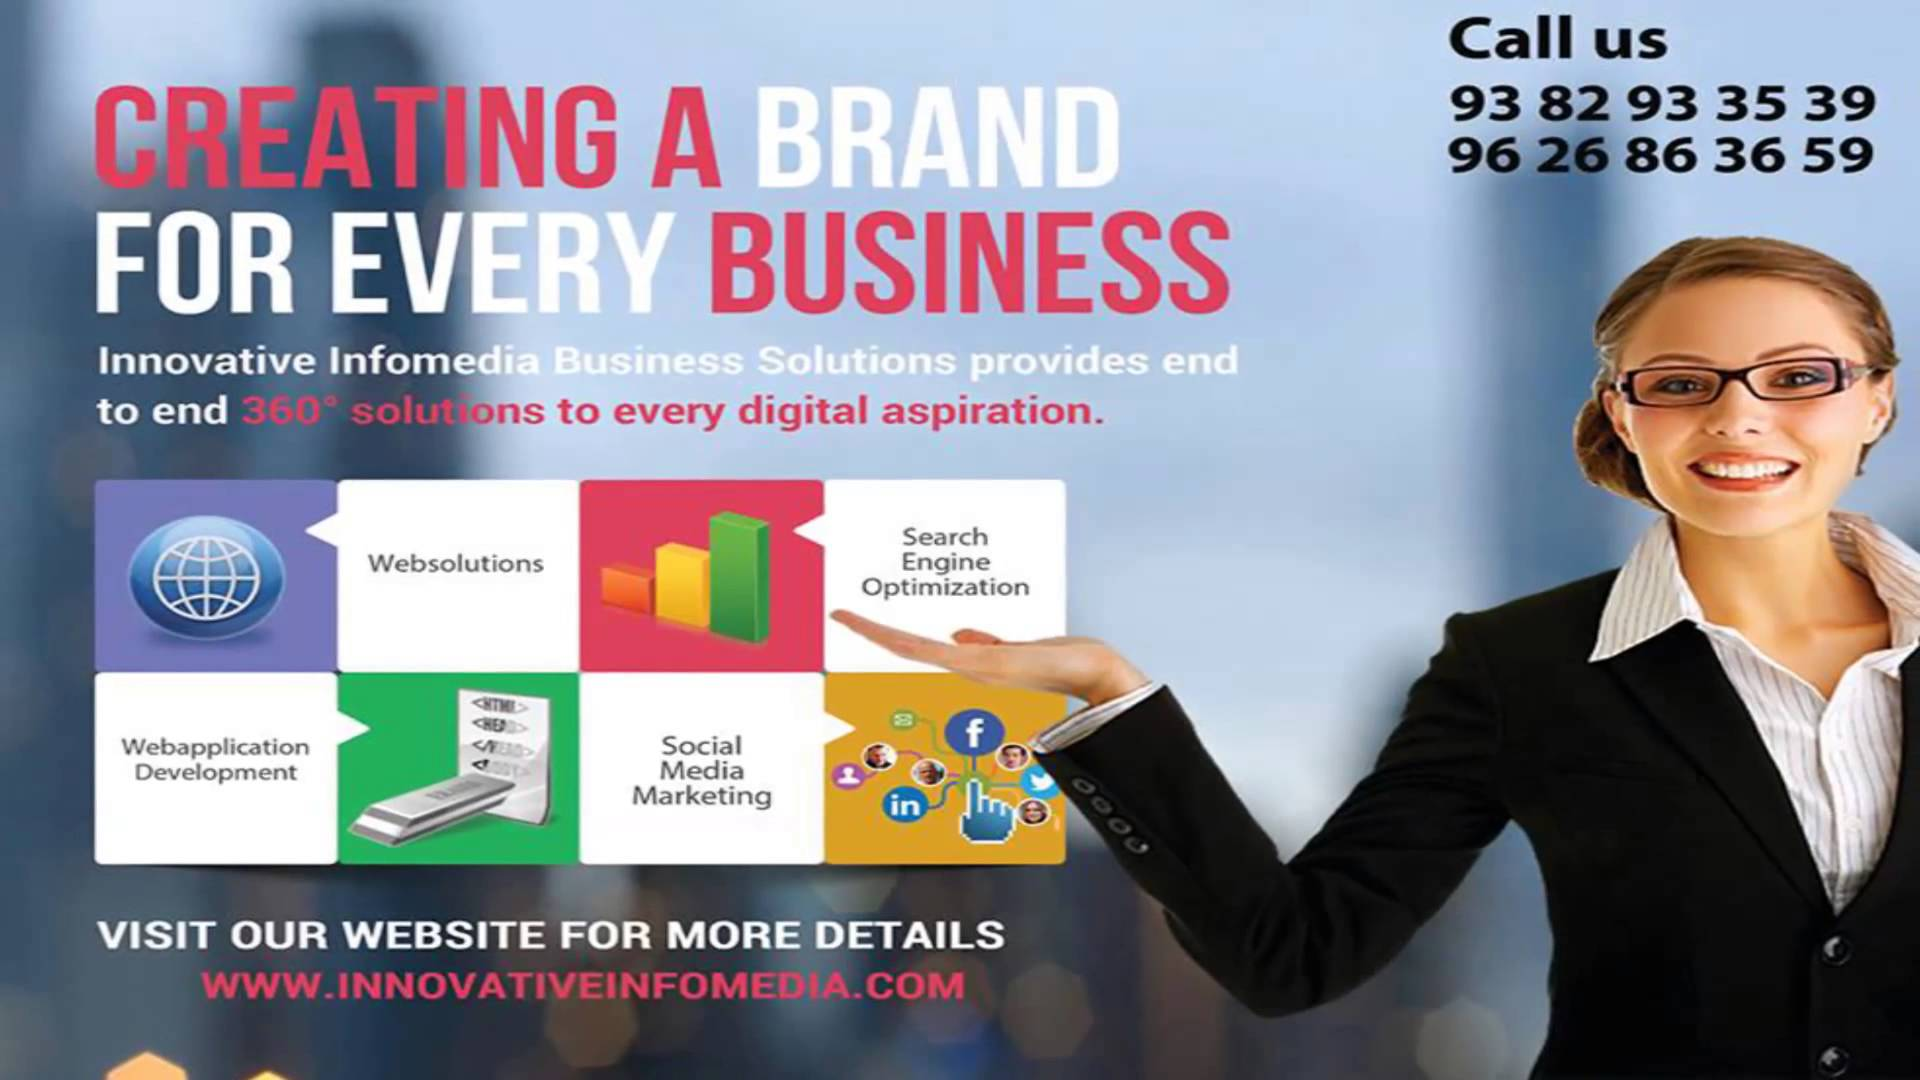 Why Companies Want To Promote By SMS Advertising?